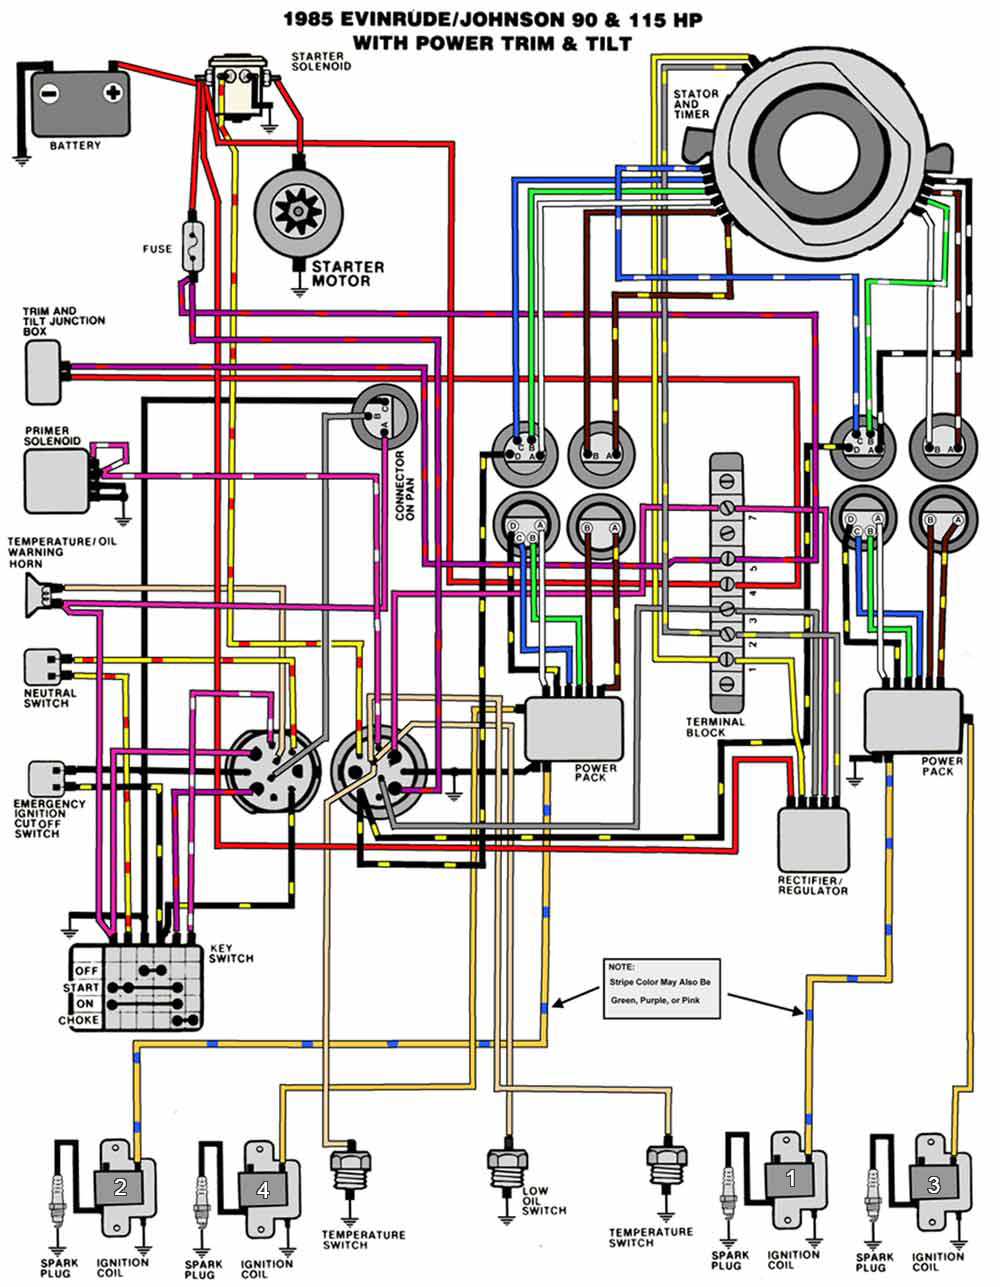 1985_90_115TnT mastertech marine evinrude johnson outboard wiring diagrams Boat Ignition Switch Wiring Diagram at mifinder.co